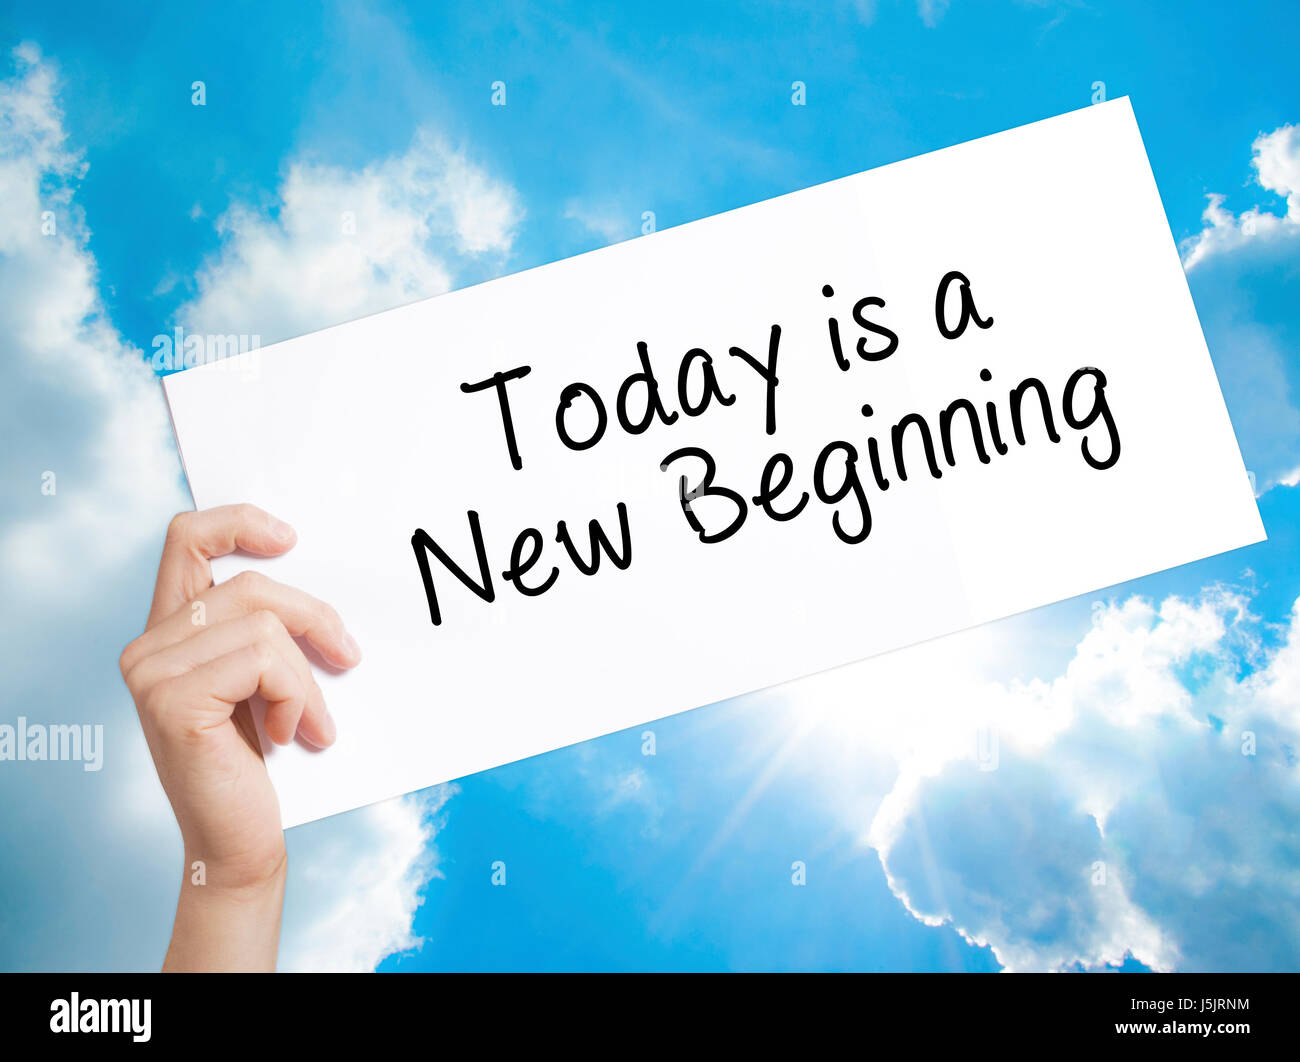 a new beginning essay With easter almost upon us, now is a good time to stop and remember what this  time means to christians for me, easter represents a new beginning, and the.